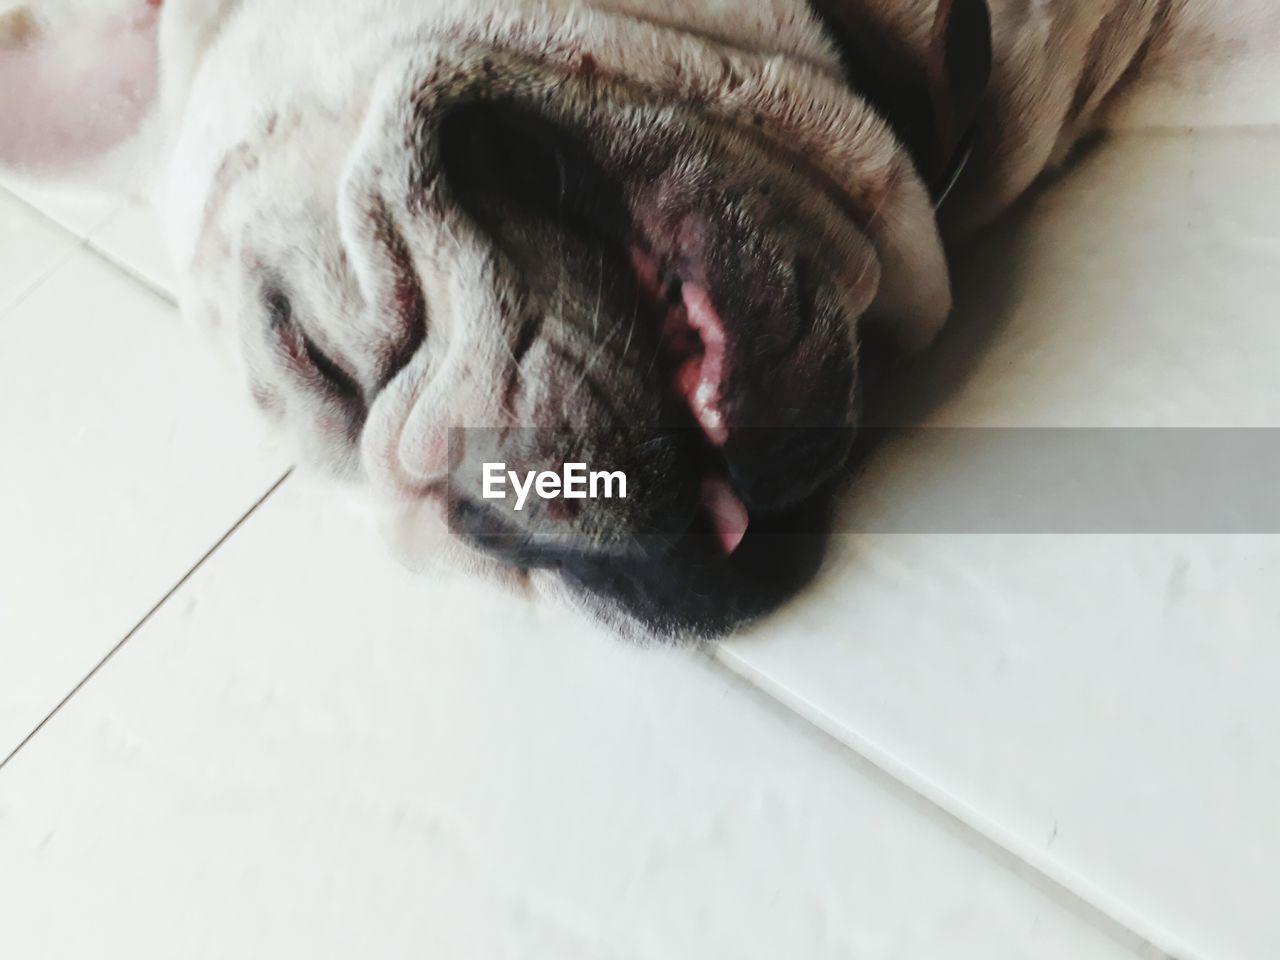 domestic, pets, domestic animals, animal themes, animal, one animal, mammal, dog, canine, vertebrate, indoors, animal body part, relaxation, no people, close-up, home interior, lying down, flooring, resting, sleeping, animal head, tiled floor, animal nose, animal mouth